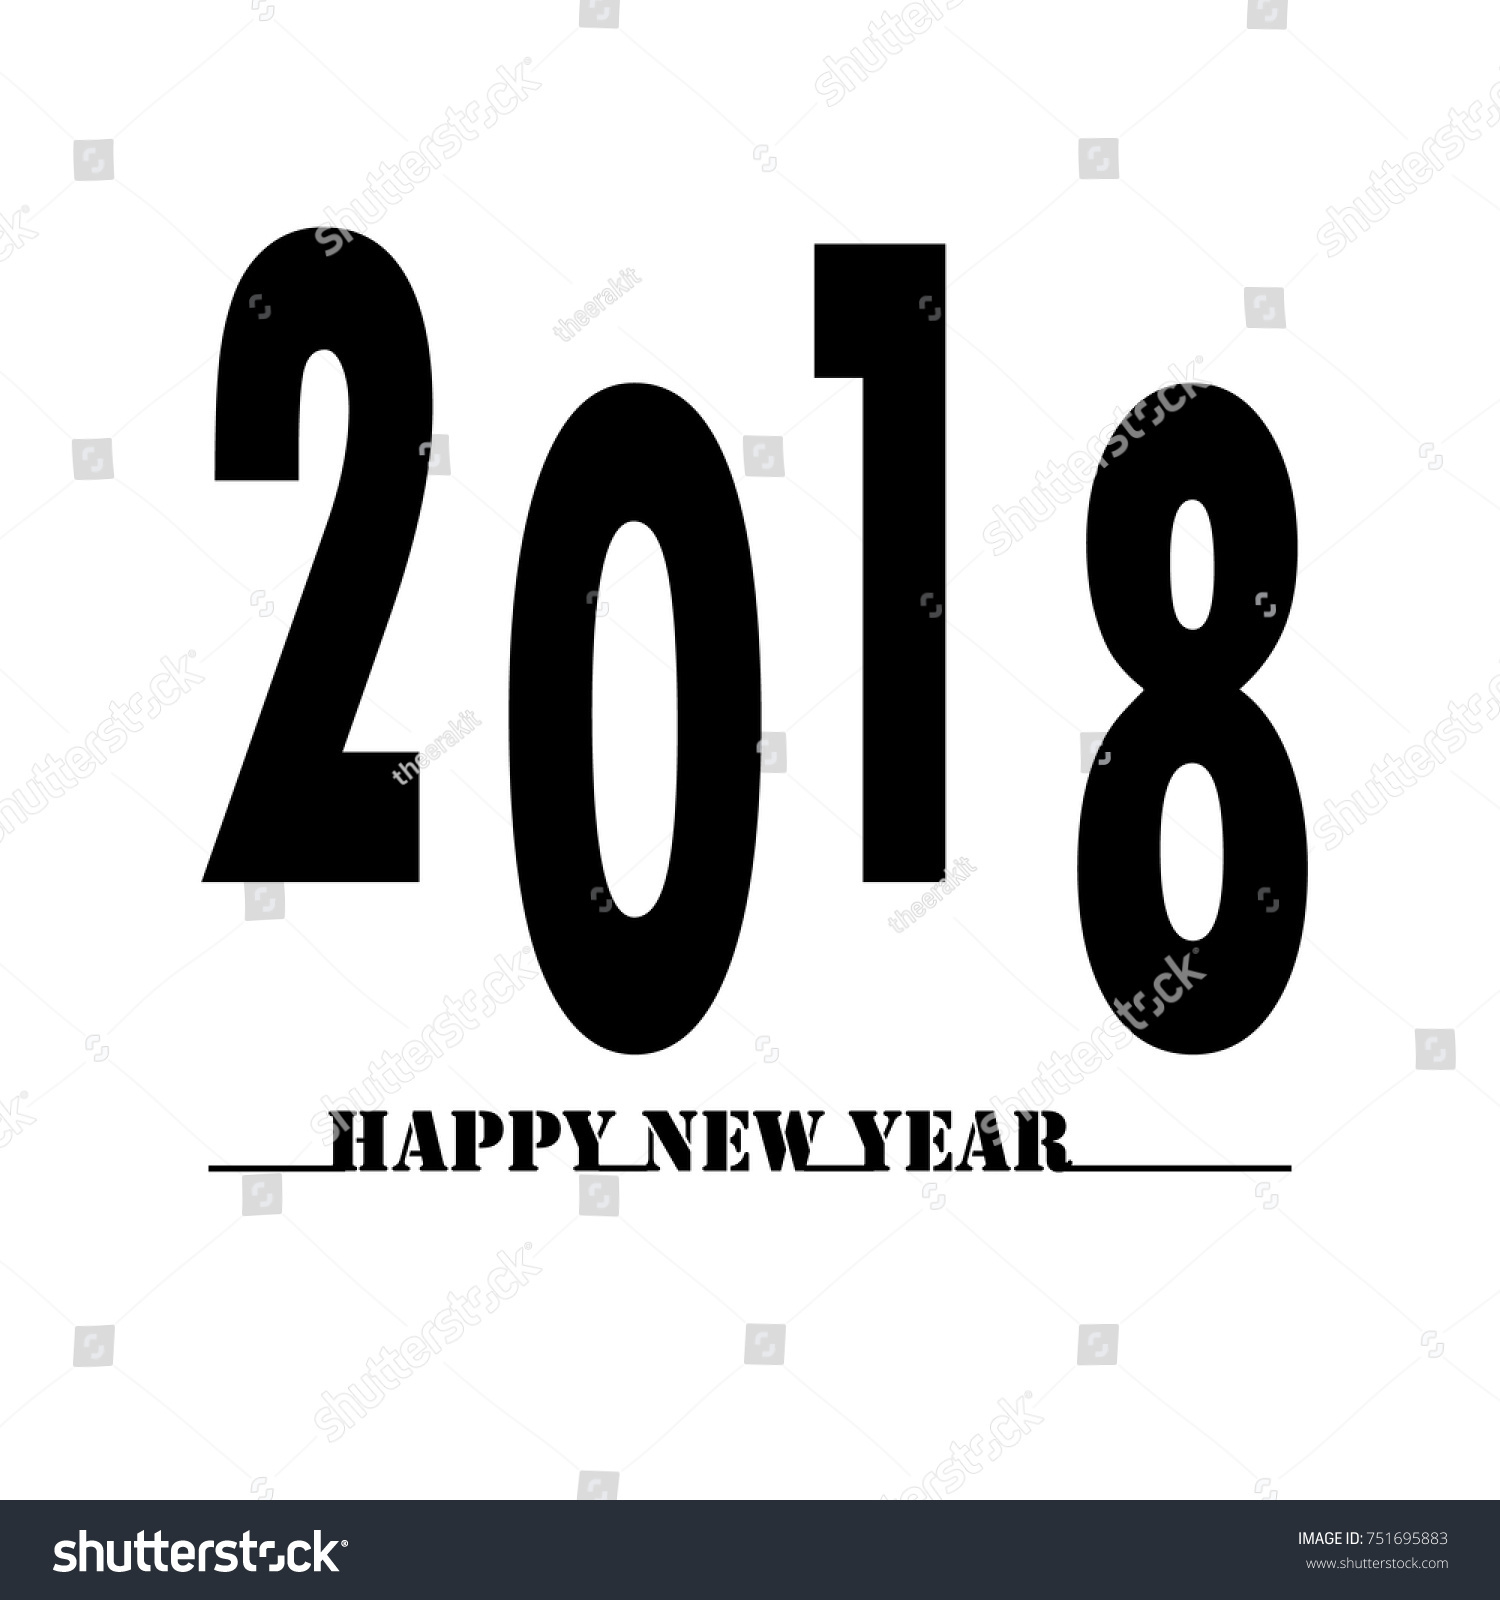 happy new year 2018 text on white background happy new year 2018 sign